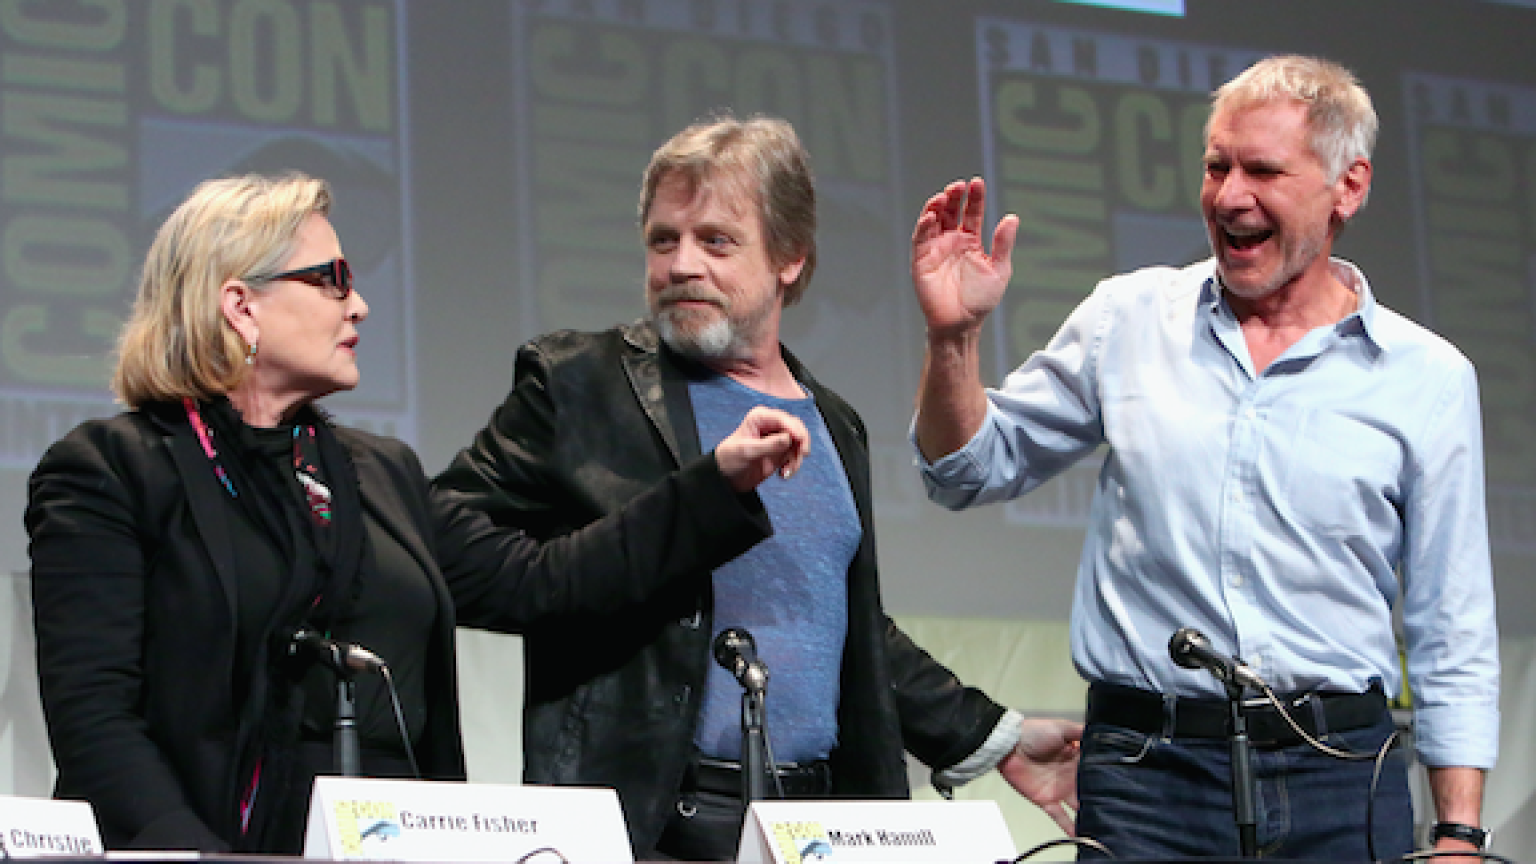 Carrie Fisher, Mark Hamill and Harrison Ford at San Diego Comic-Con 2015